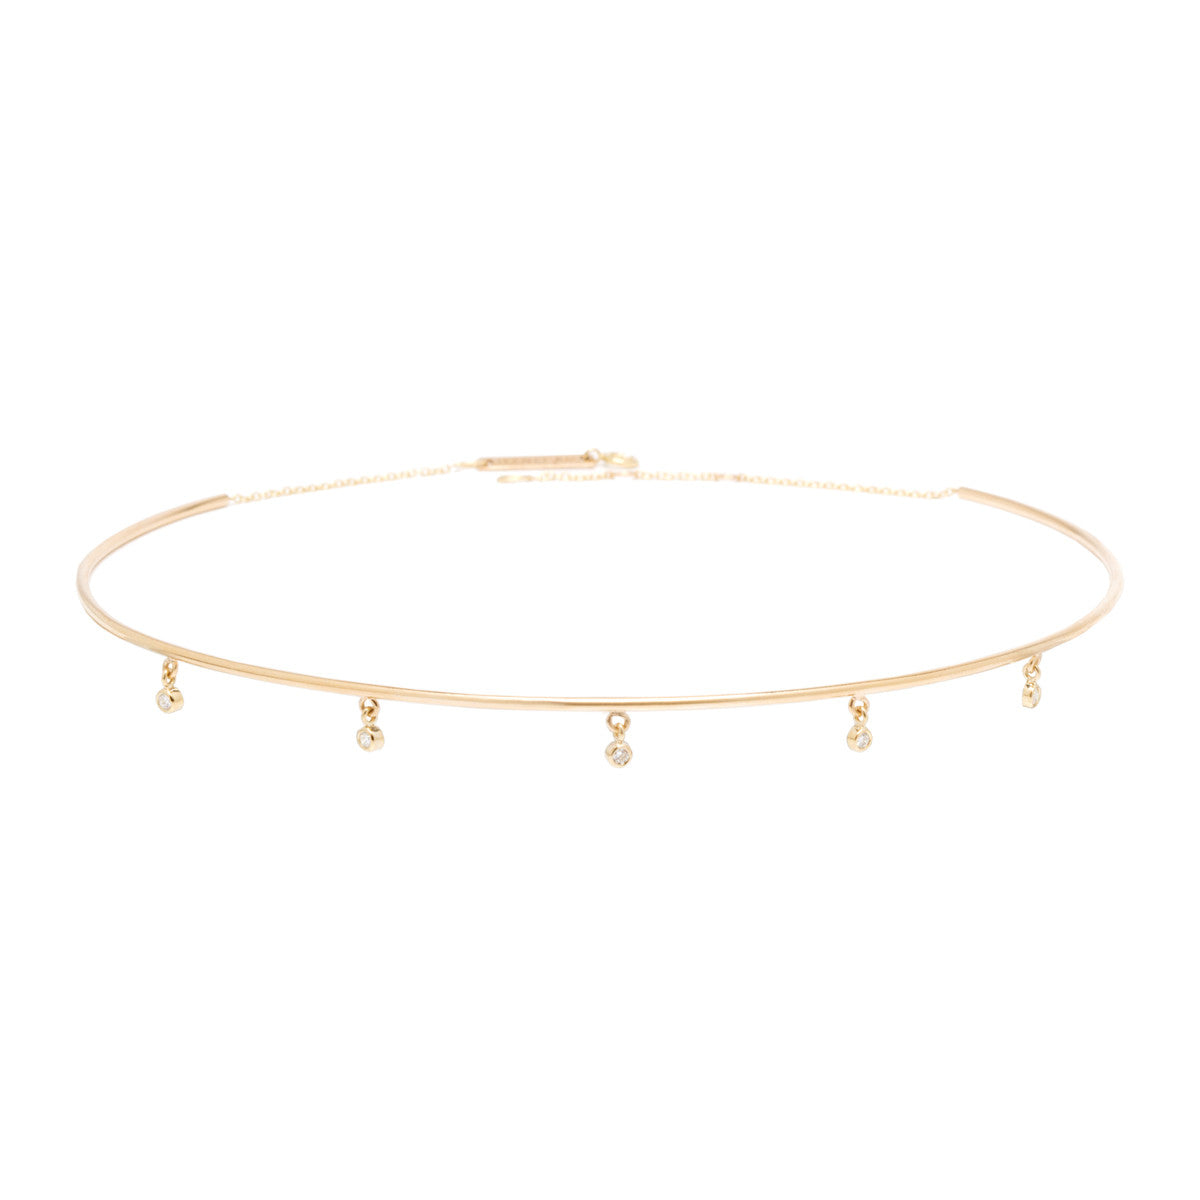 Zoë Chicco 14kt Yellow Gold Dangling 5 White Diamond Wire Choker Necklace